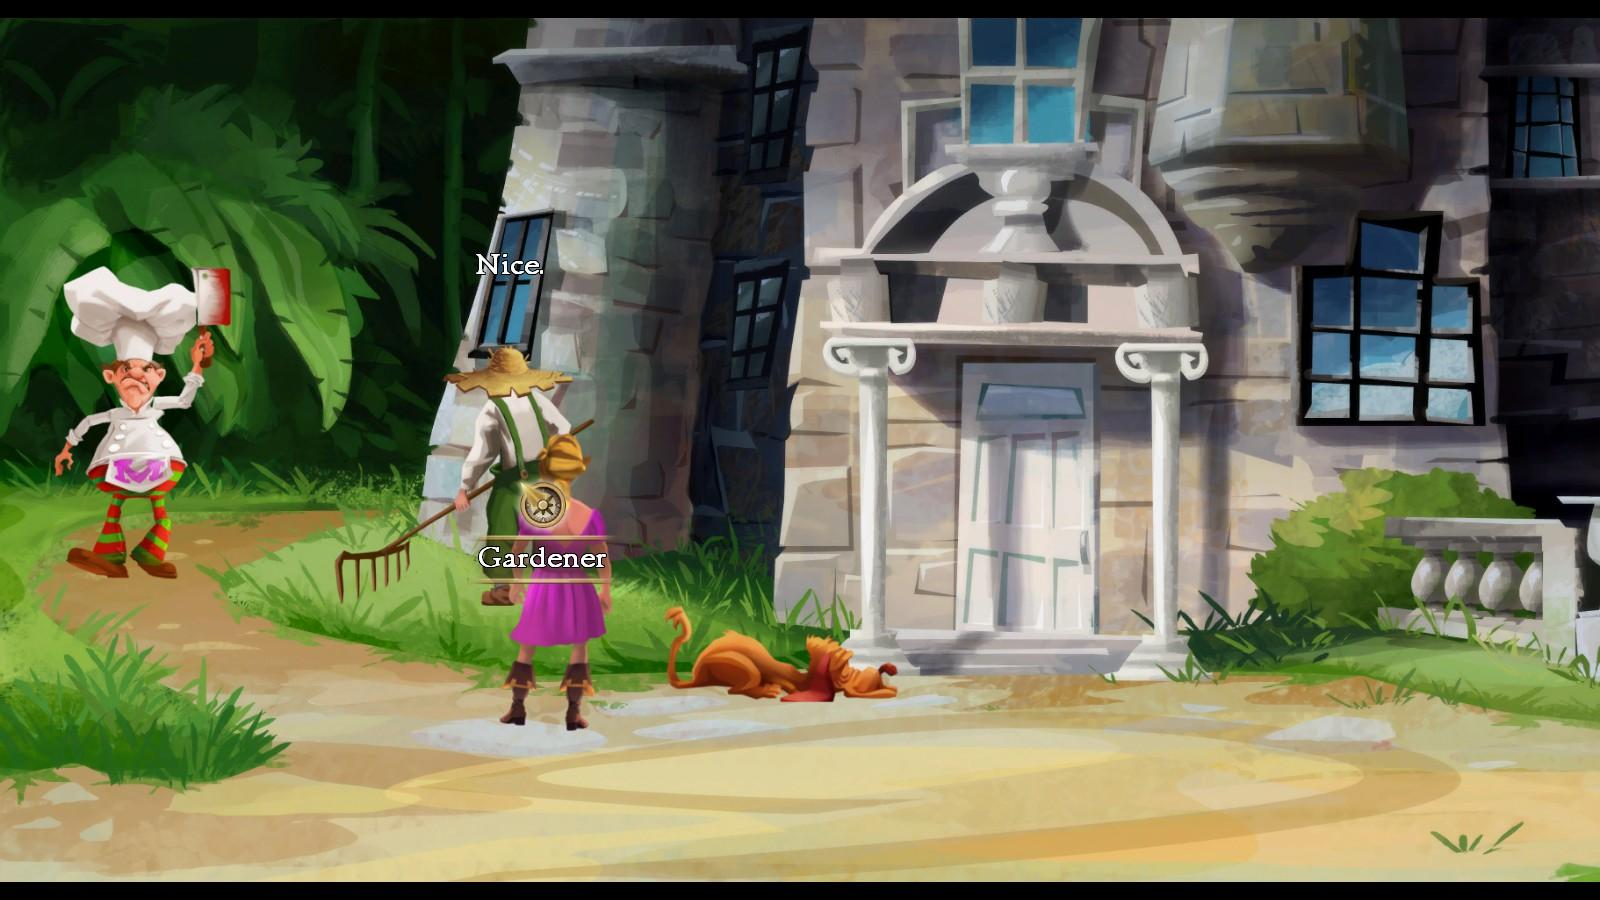 Monkey Island image Monkey Island 2: Special Edition HD wallpapers